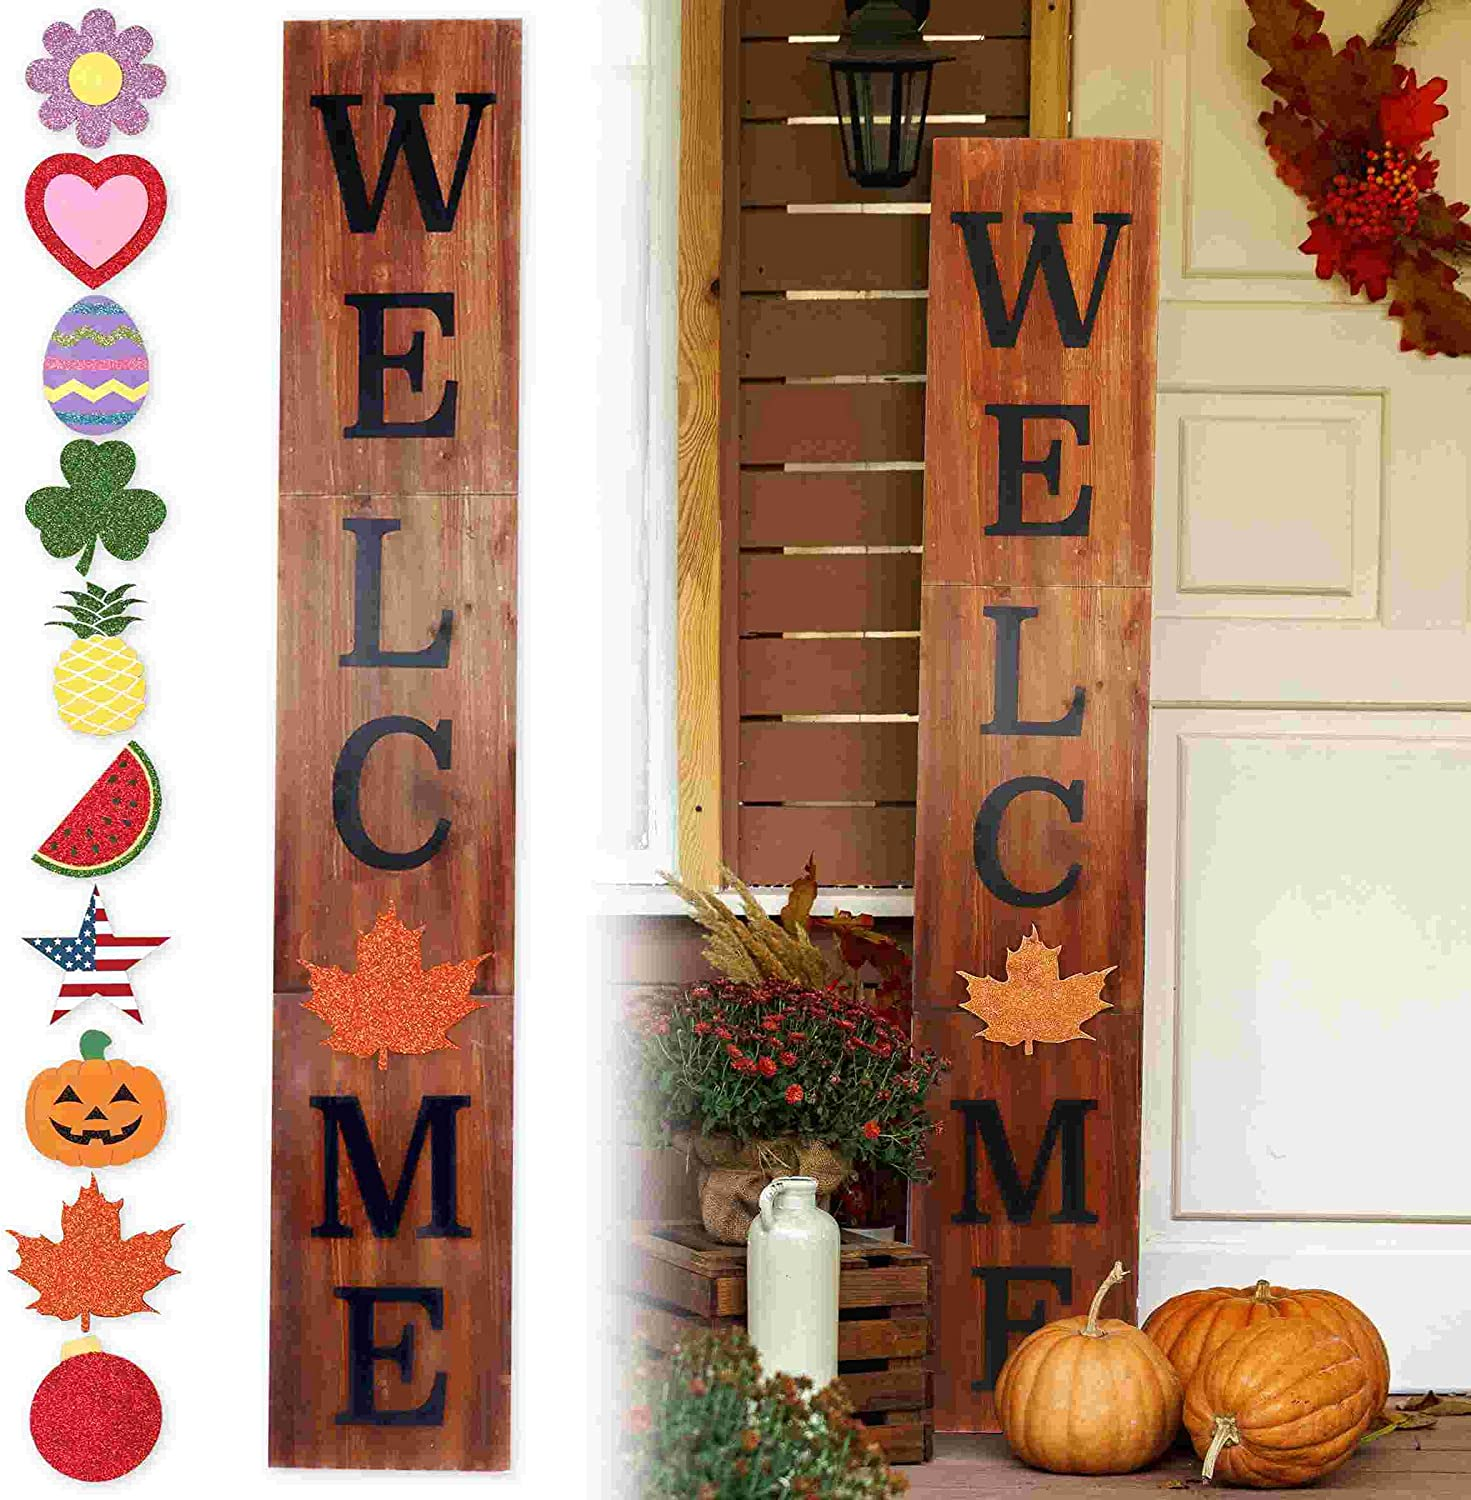 Outdoor Welcome Sign for Front Porch Decor, InterchangeableSeasonal Icons Vertical Welcome Sign, Modern Farmhouse Decor for The Home, Wooden Welcome Sign Rustic Brown (11.75